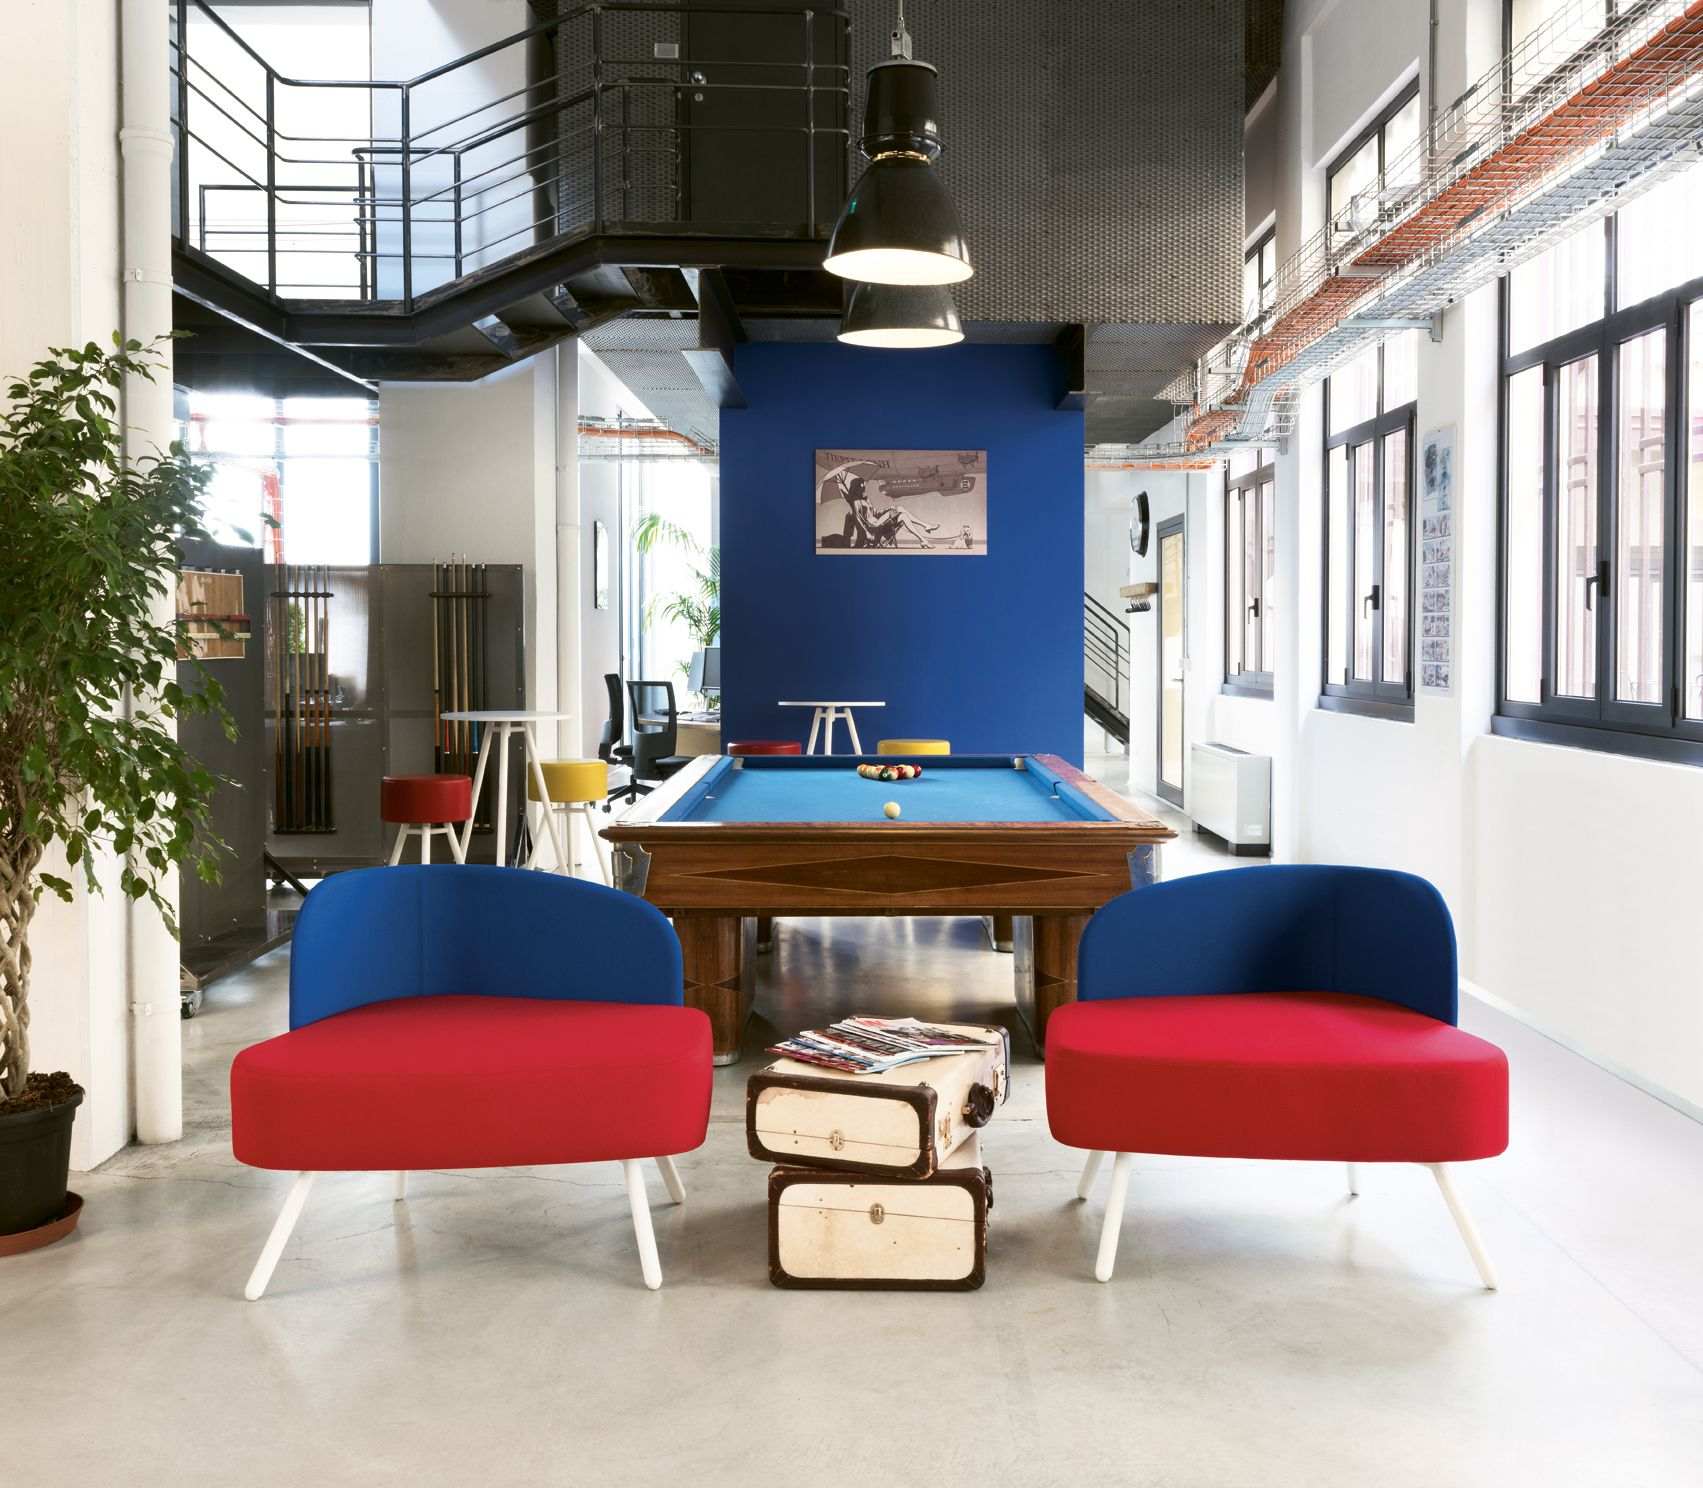 creative office spaces. A Creative Office Space For Company. In Digital Post-production Company Milan, Modular Flexible And Innovative Furniture System. Spaces